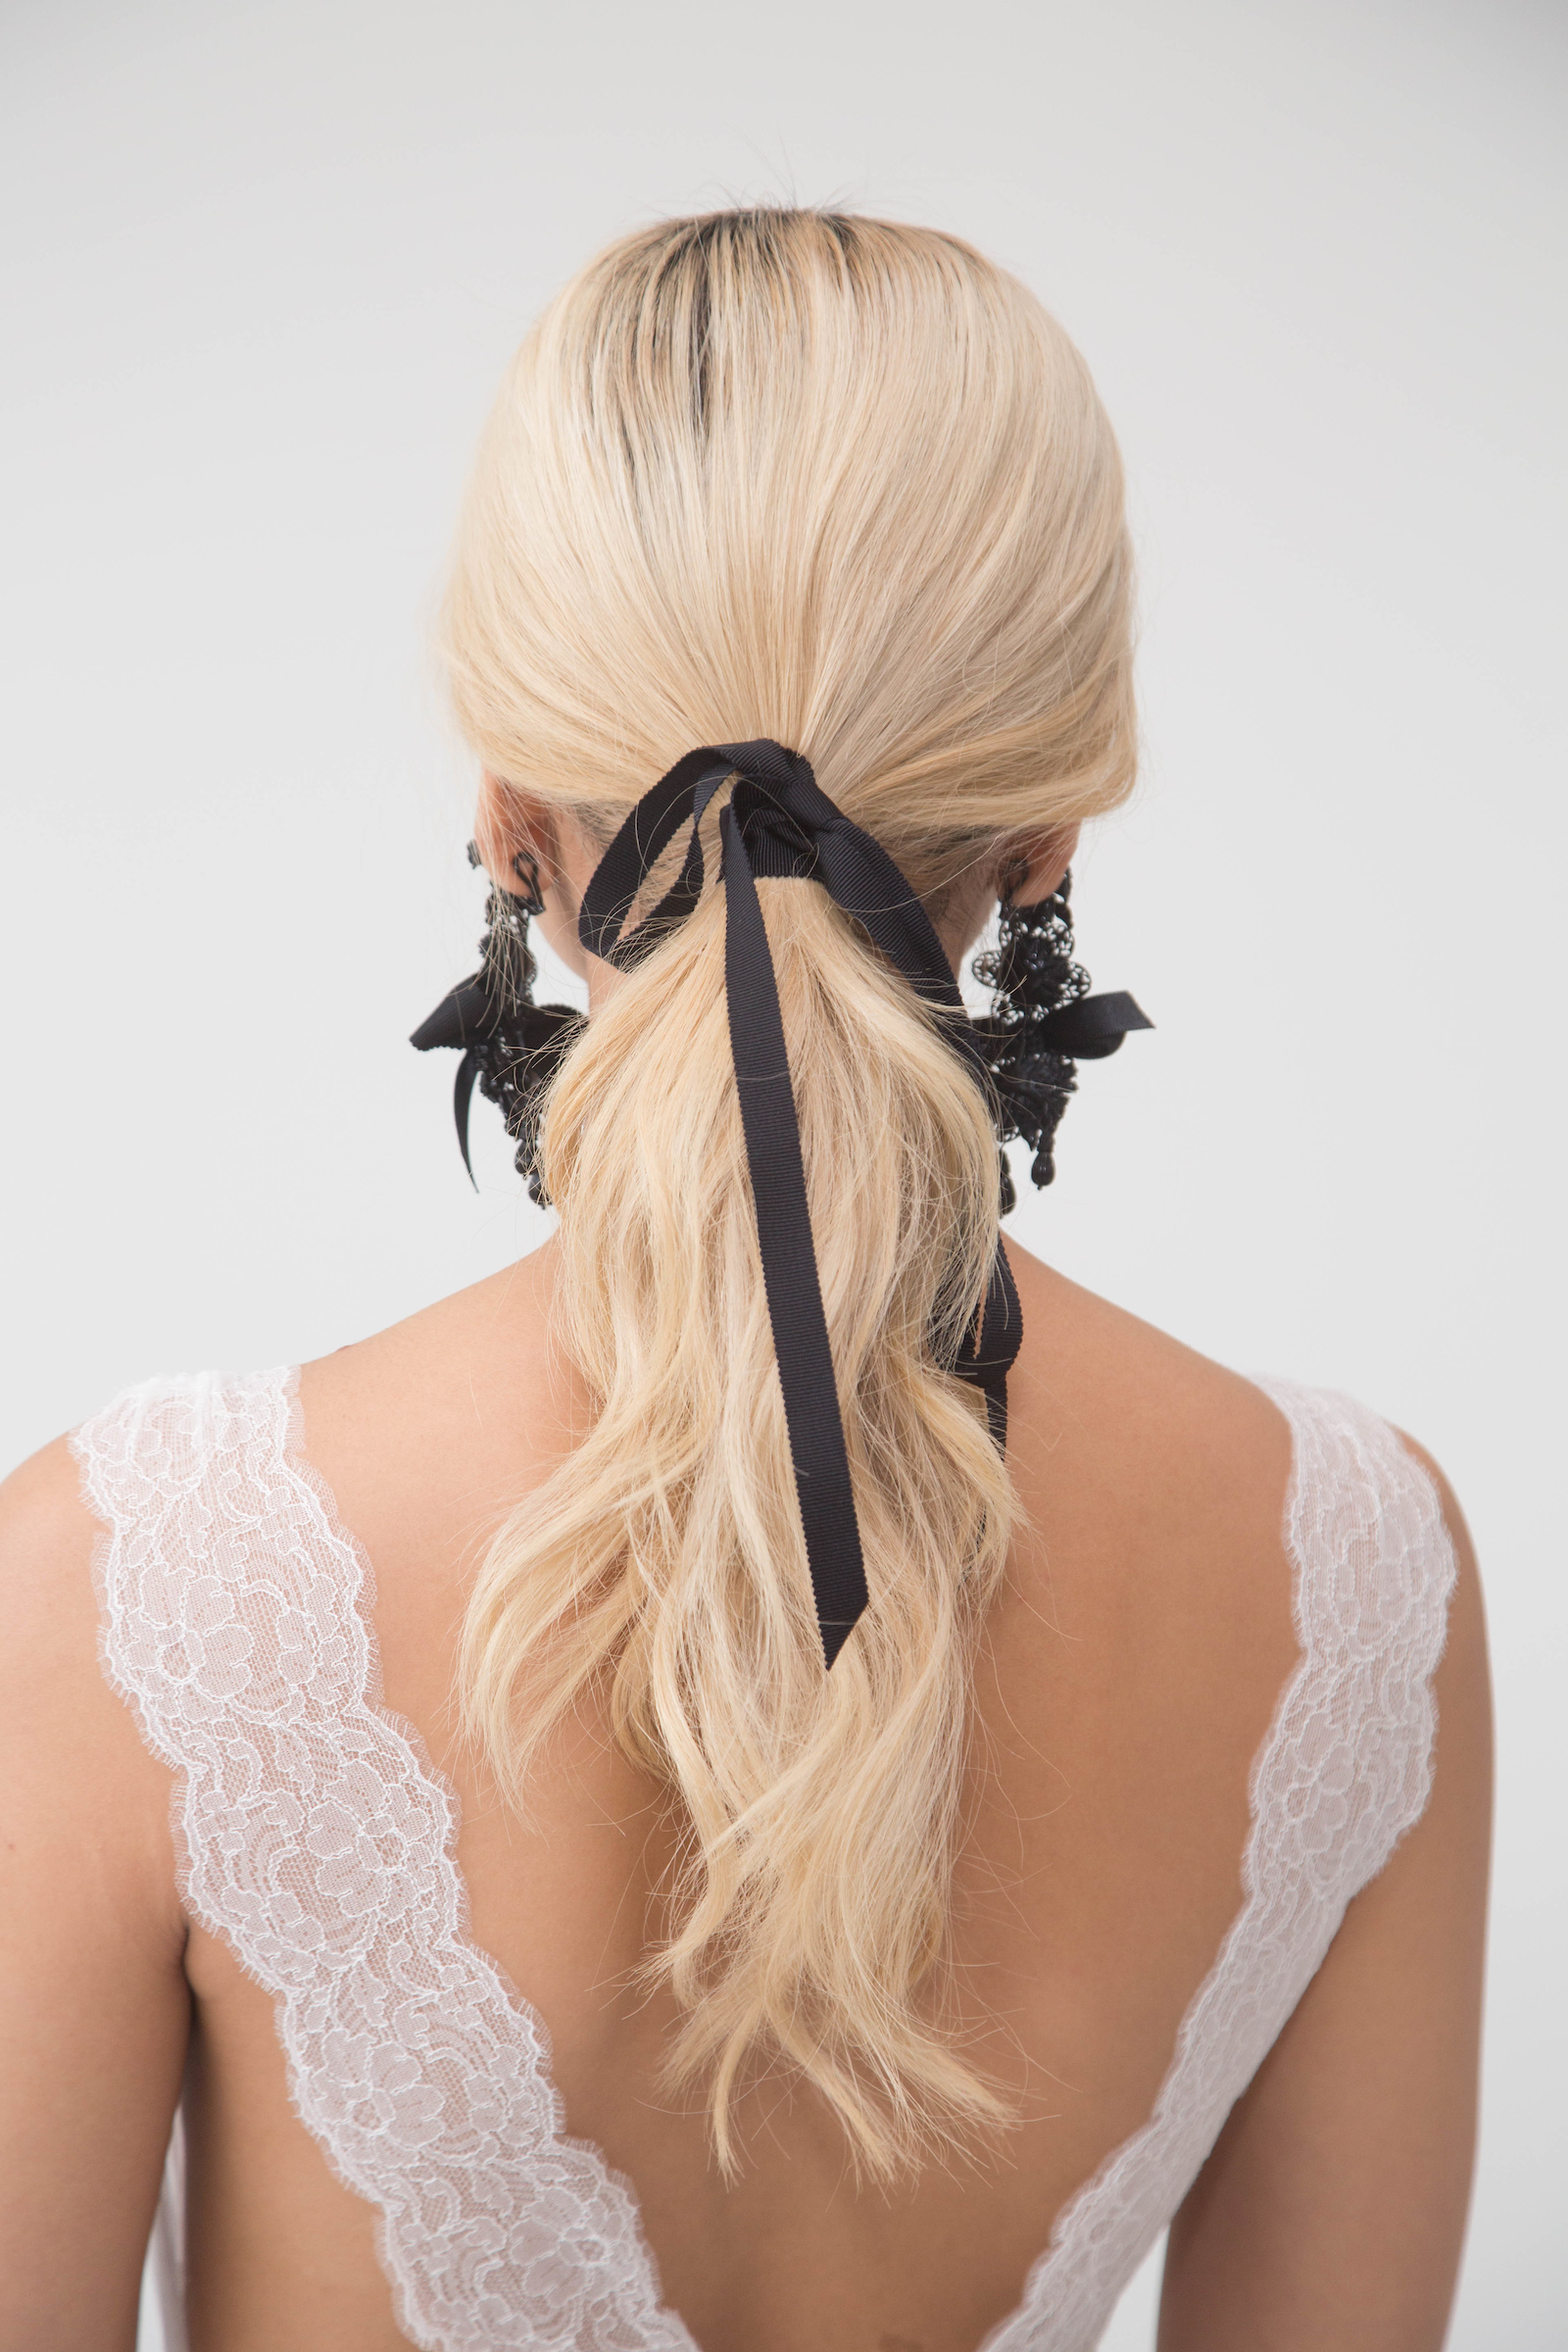 6 Dermatologist-Approved Tips for Getting Rid of Bridal Bacne